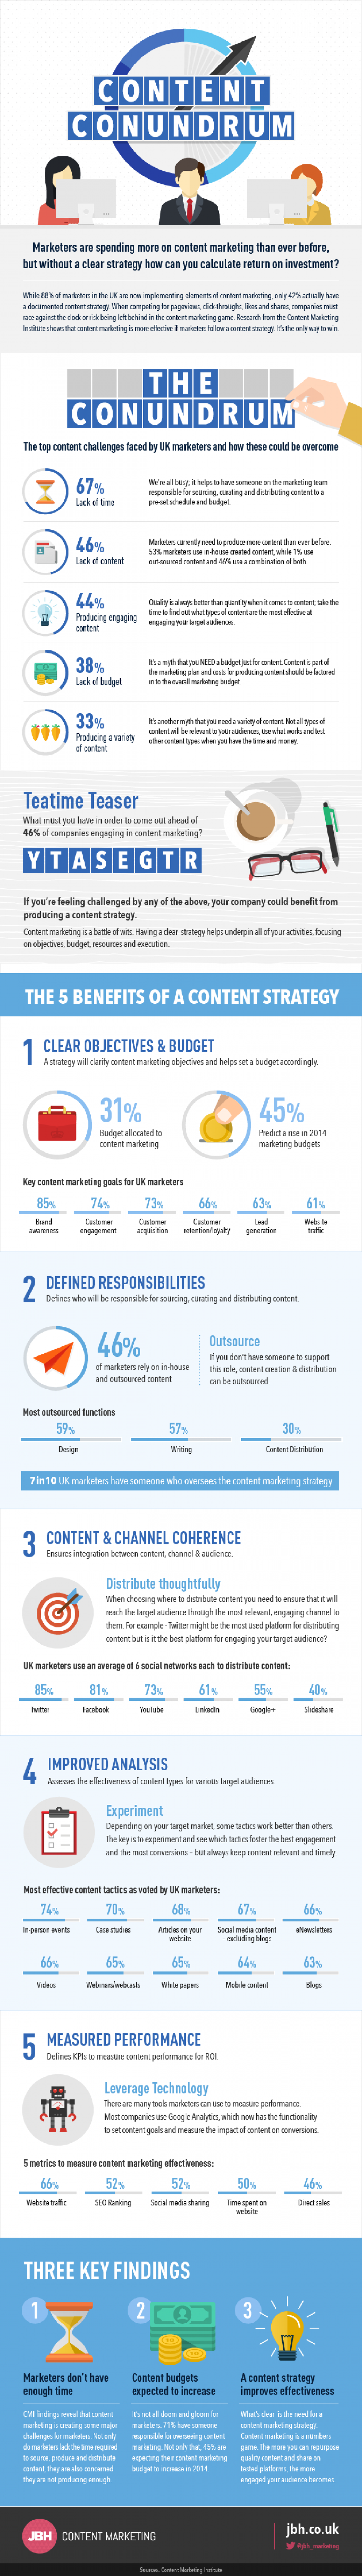 The UK Content Conundrum Infographic